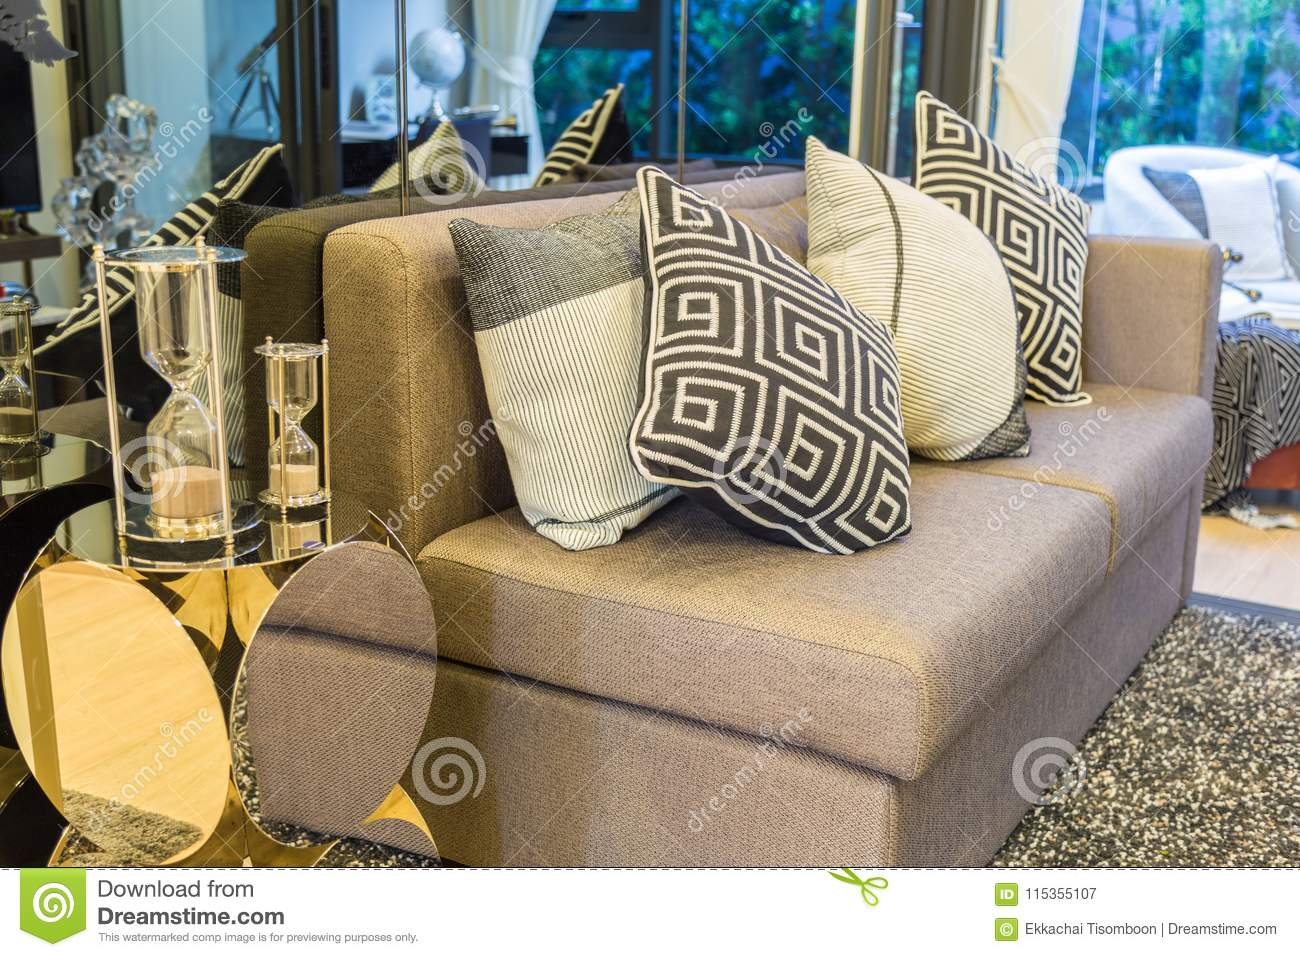 a hourglass side pillows on a brown sofa with a black and white rh dreamstime com